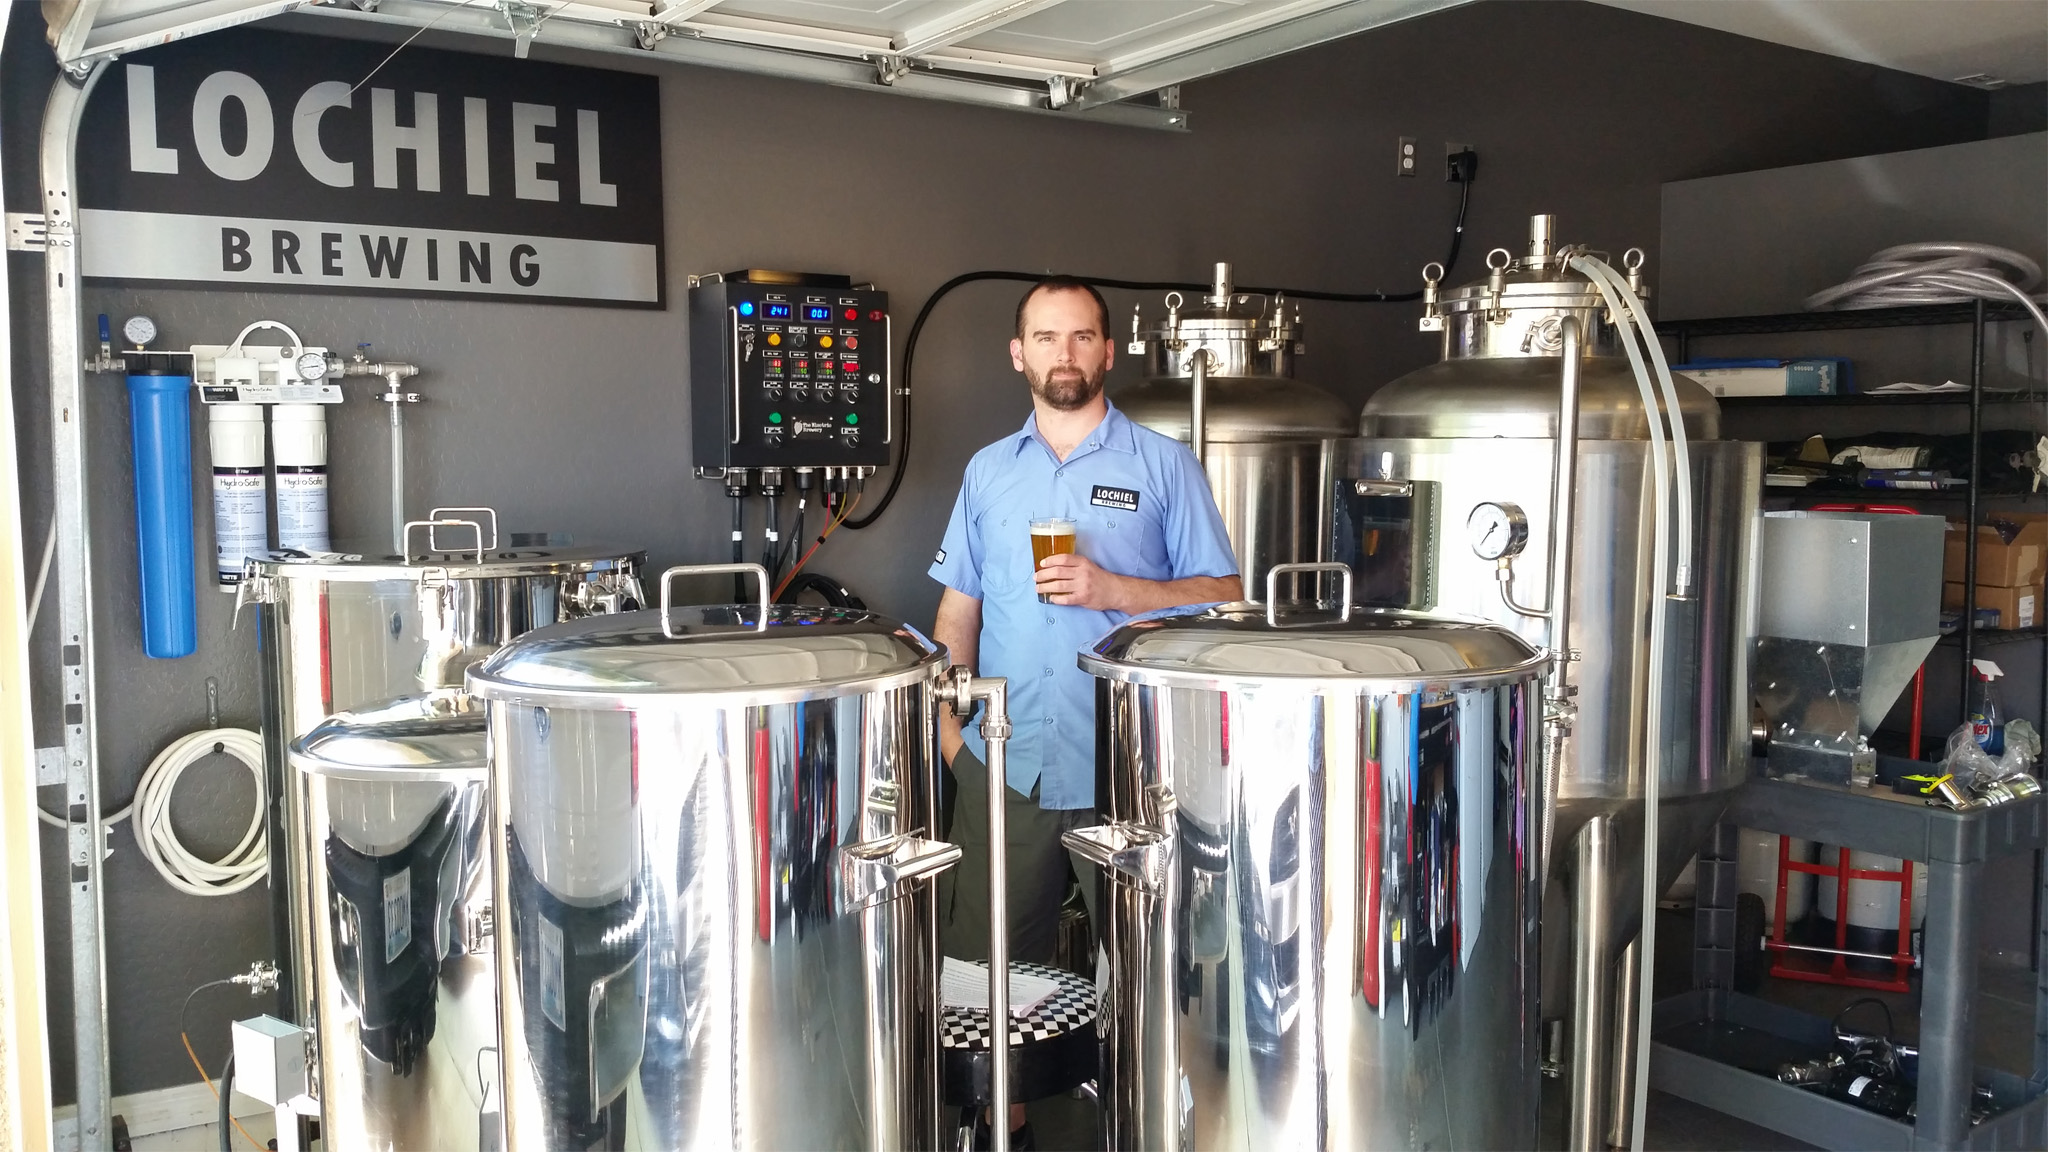 Lochiel Brewing Uses Theelectricbrewery Equipment